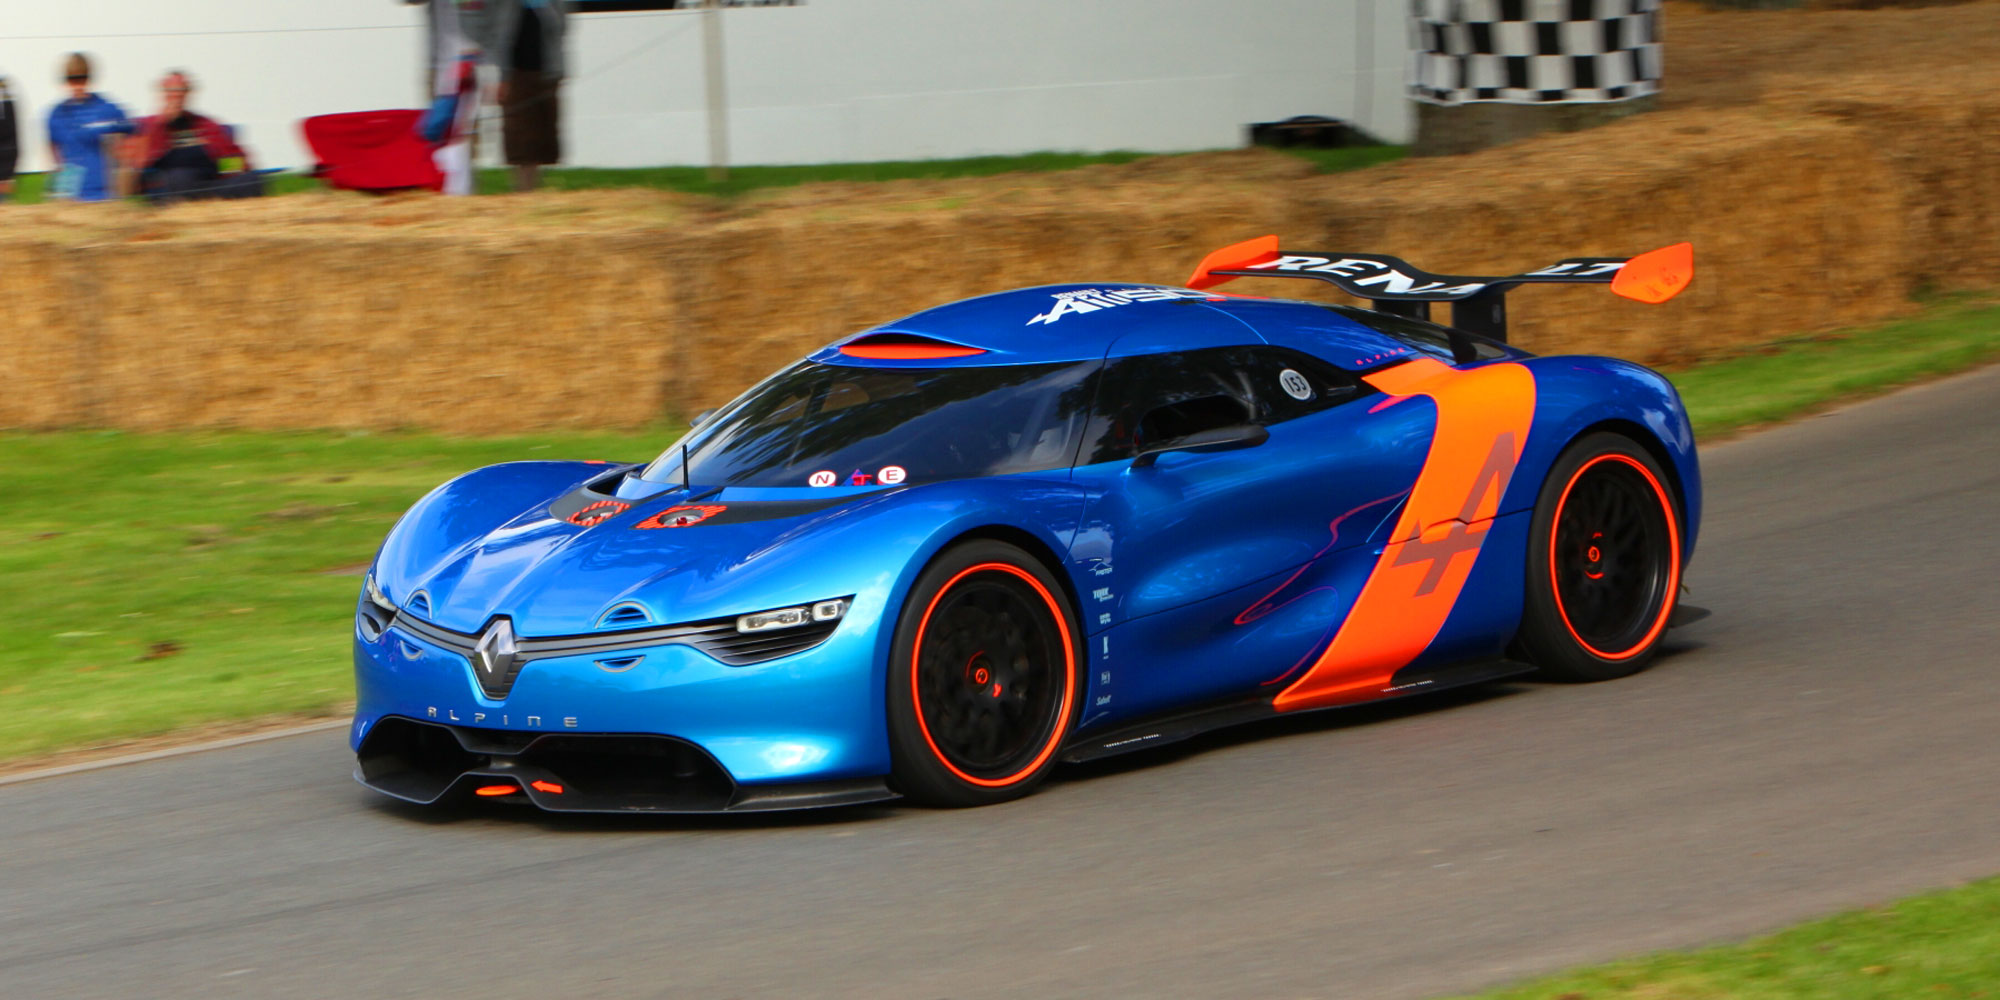 alpine a110 50 vs a110 sur route vid o dark cars wallpapers. Black Bedroom Furniture Sets. Home Design Ideas